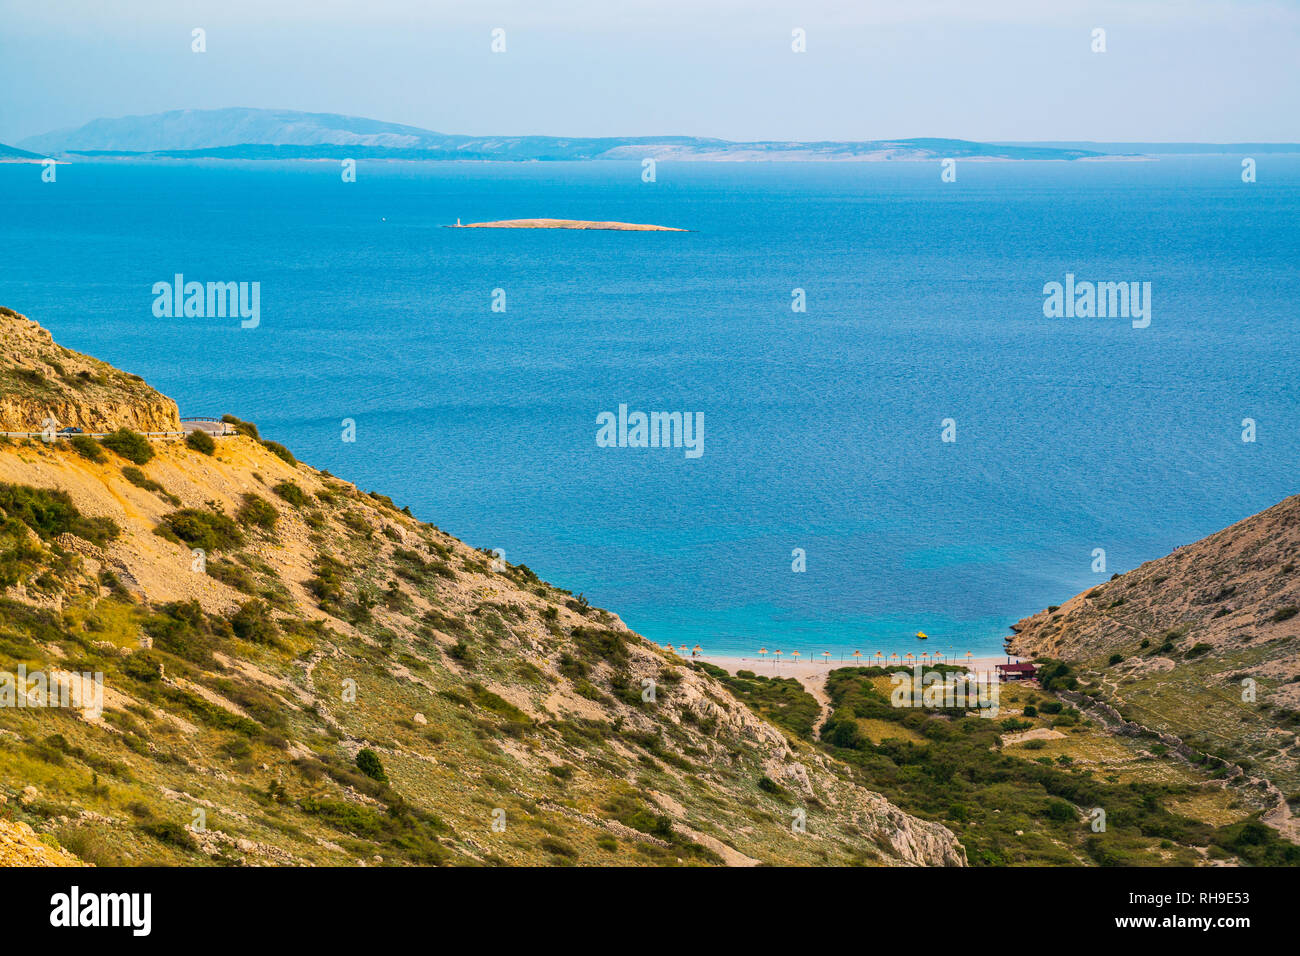 Stara Baska , Krk Island, Adriatic sea, Croatia, Europe - Stock Image